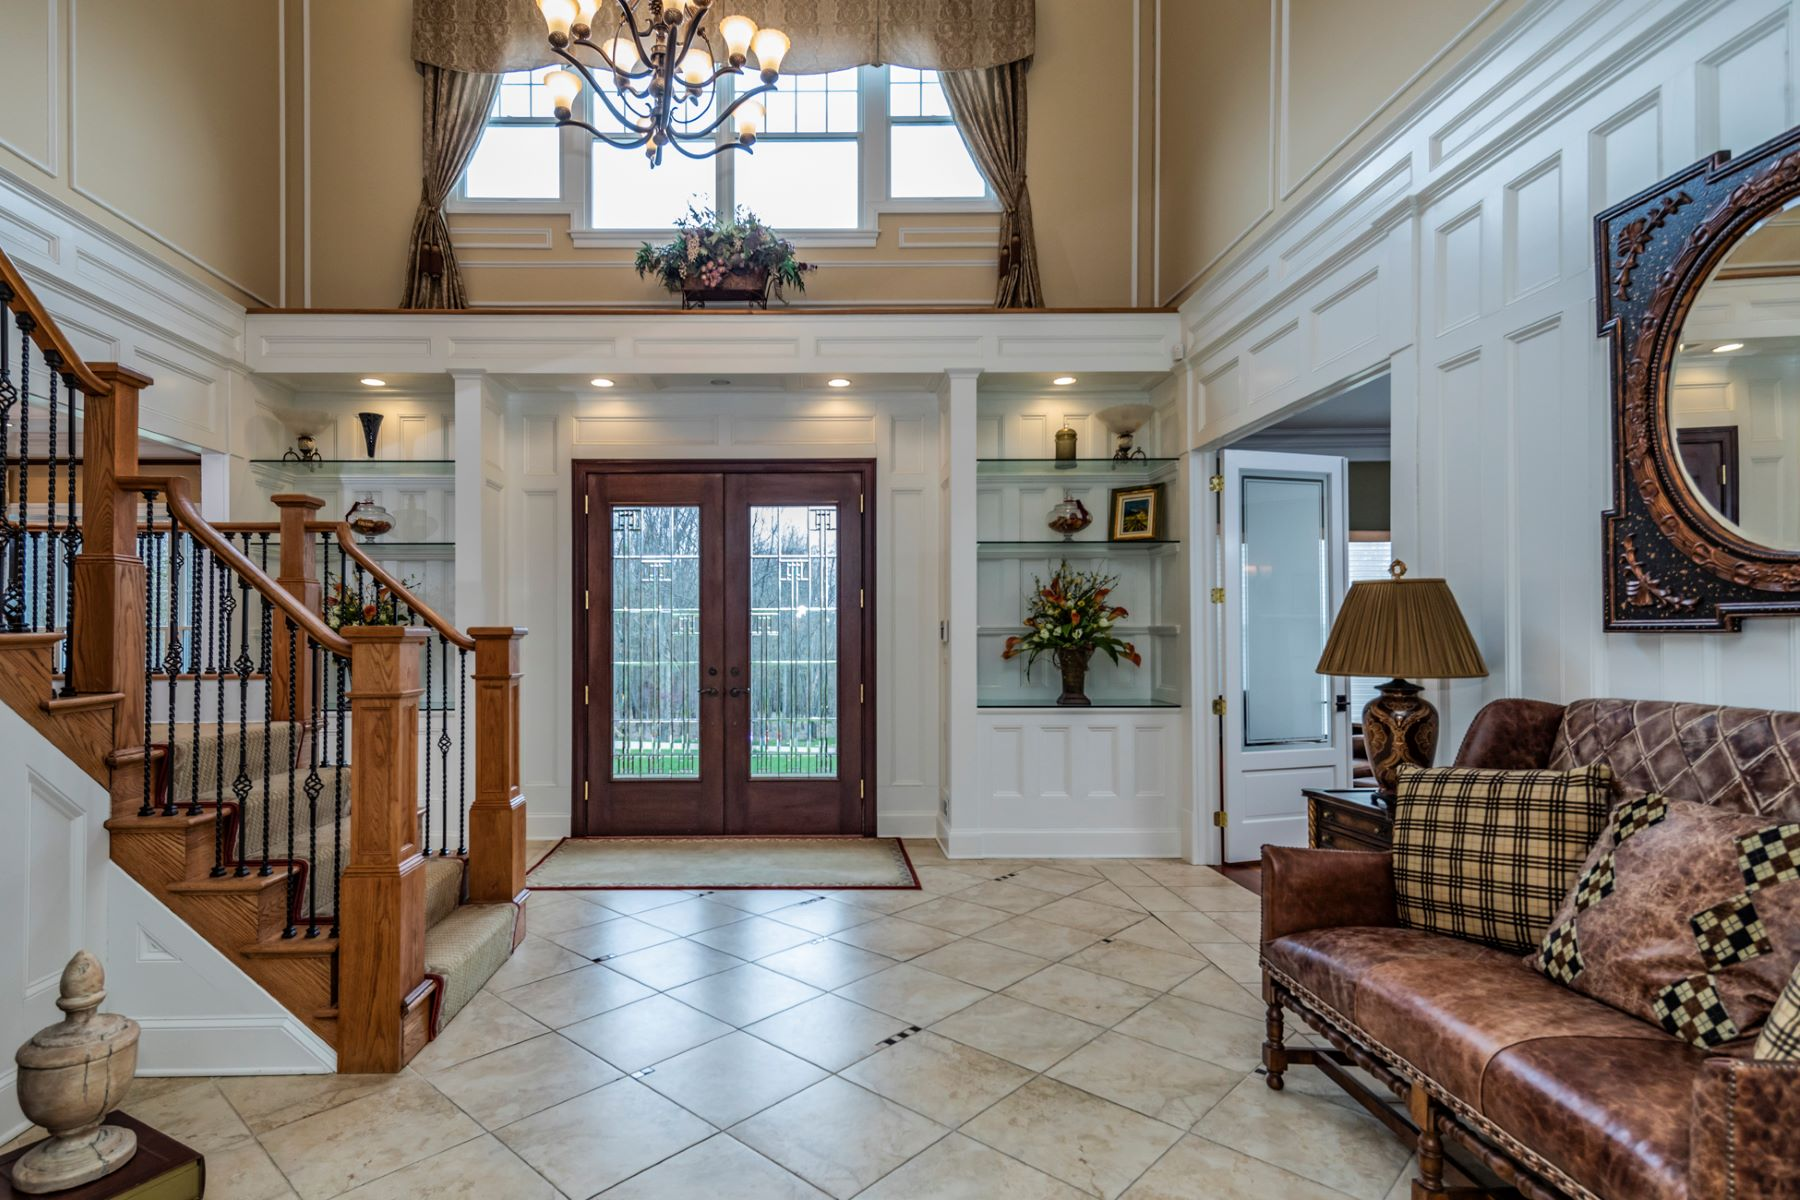 Additional photo for property listing at An Oasis Of Luxury Custom Built to the Highest Standards 239 Zion Road, Hillsborough, New Jersey 08844 United States